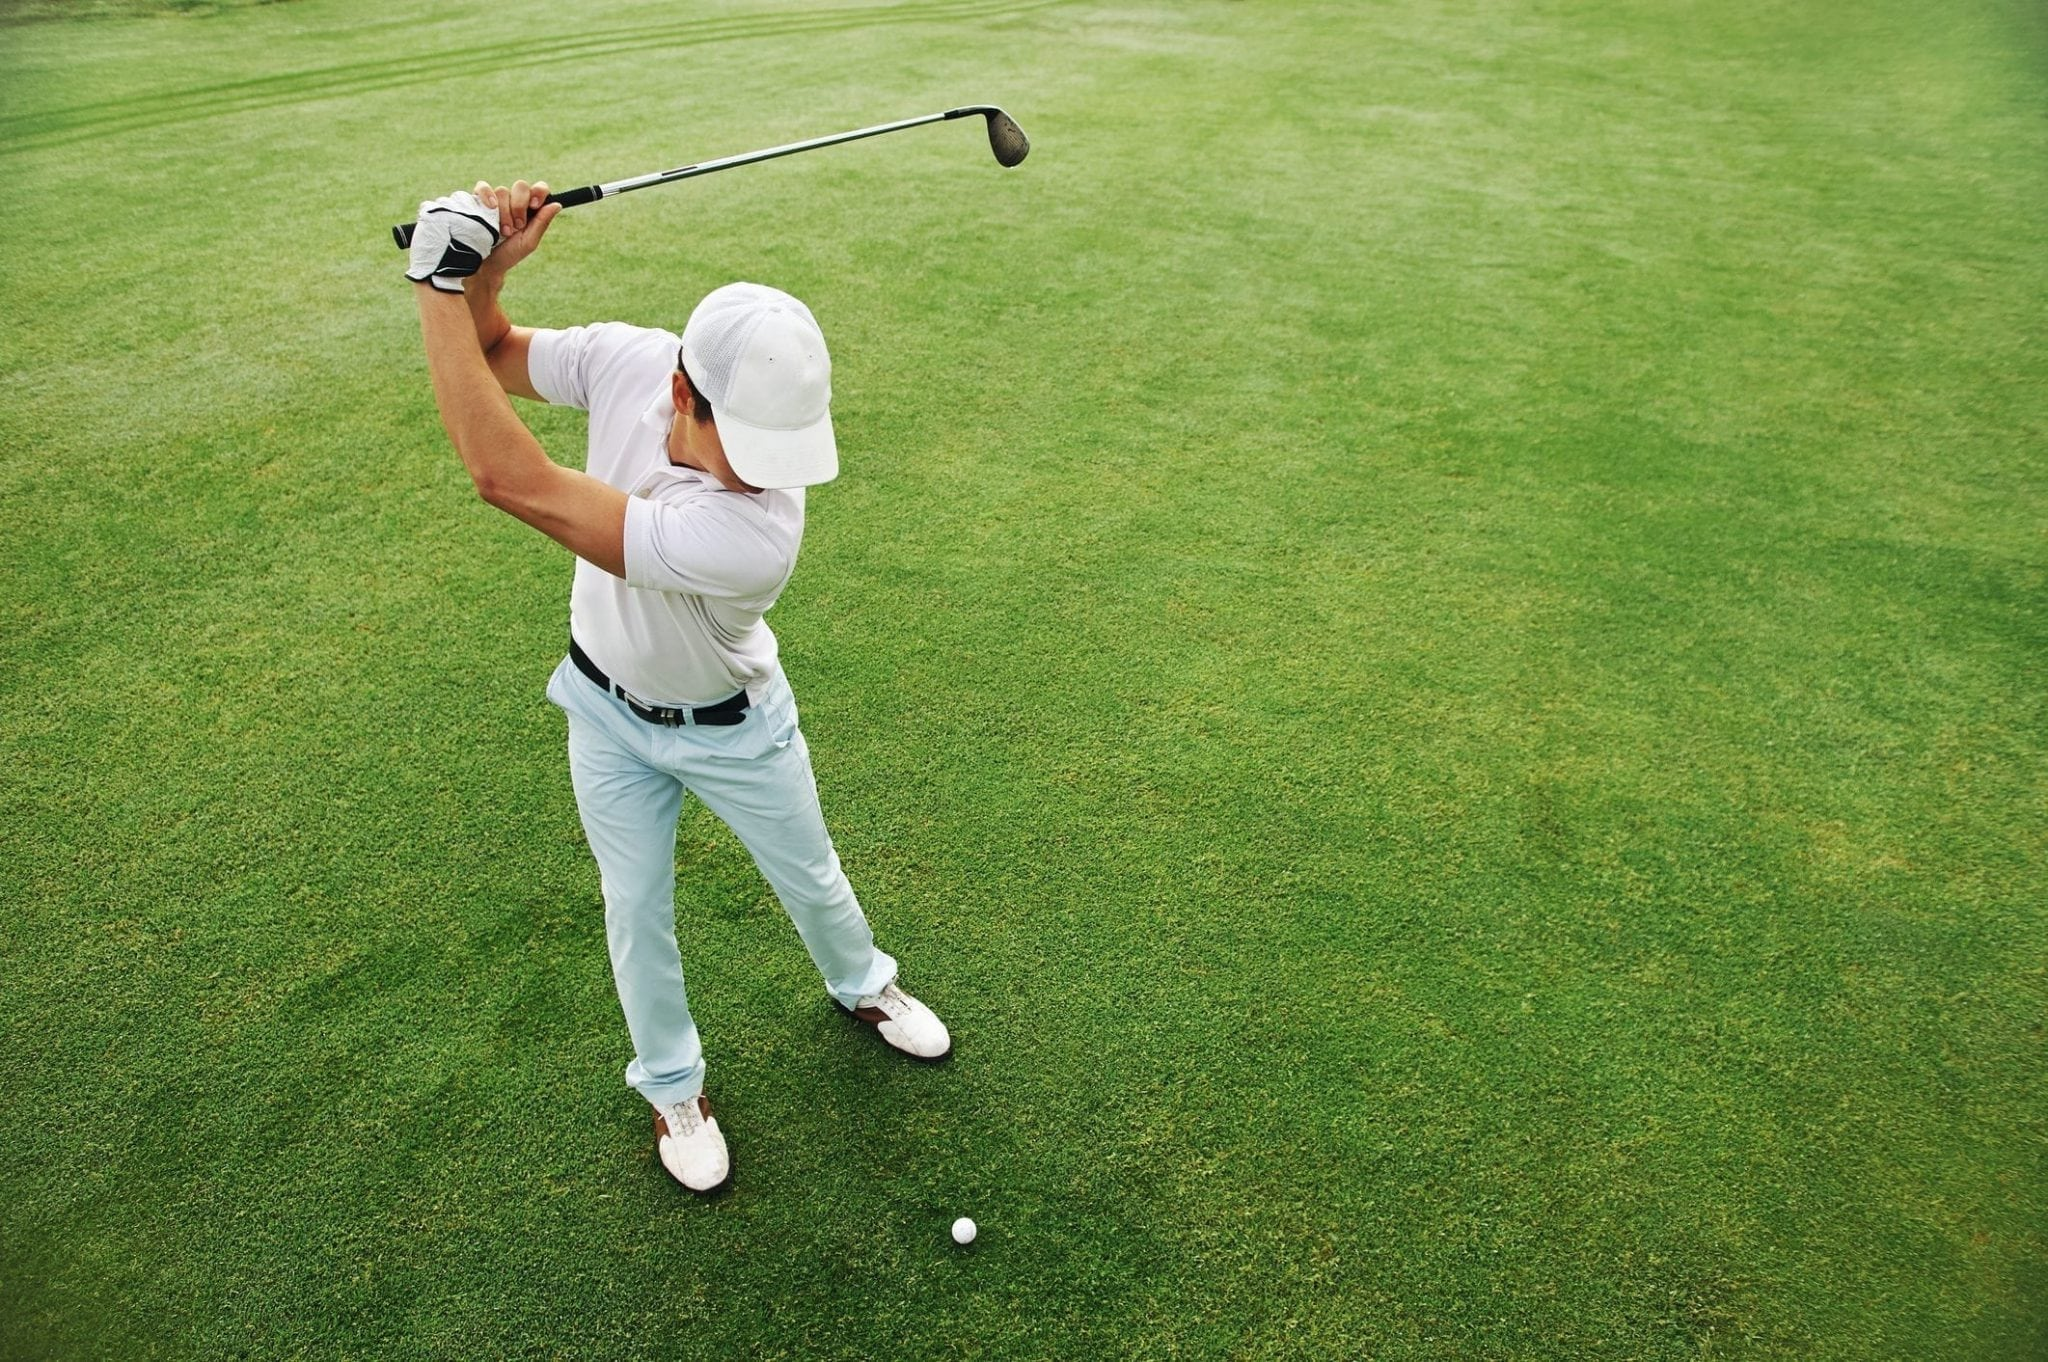 5 Golf Tips to Shave Strokes Fast